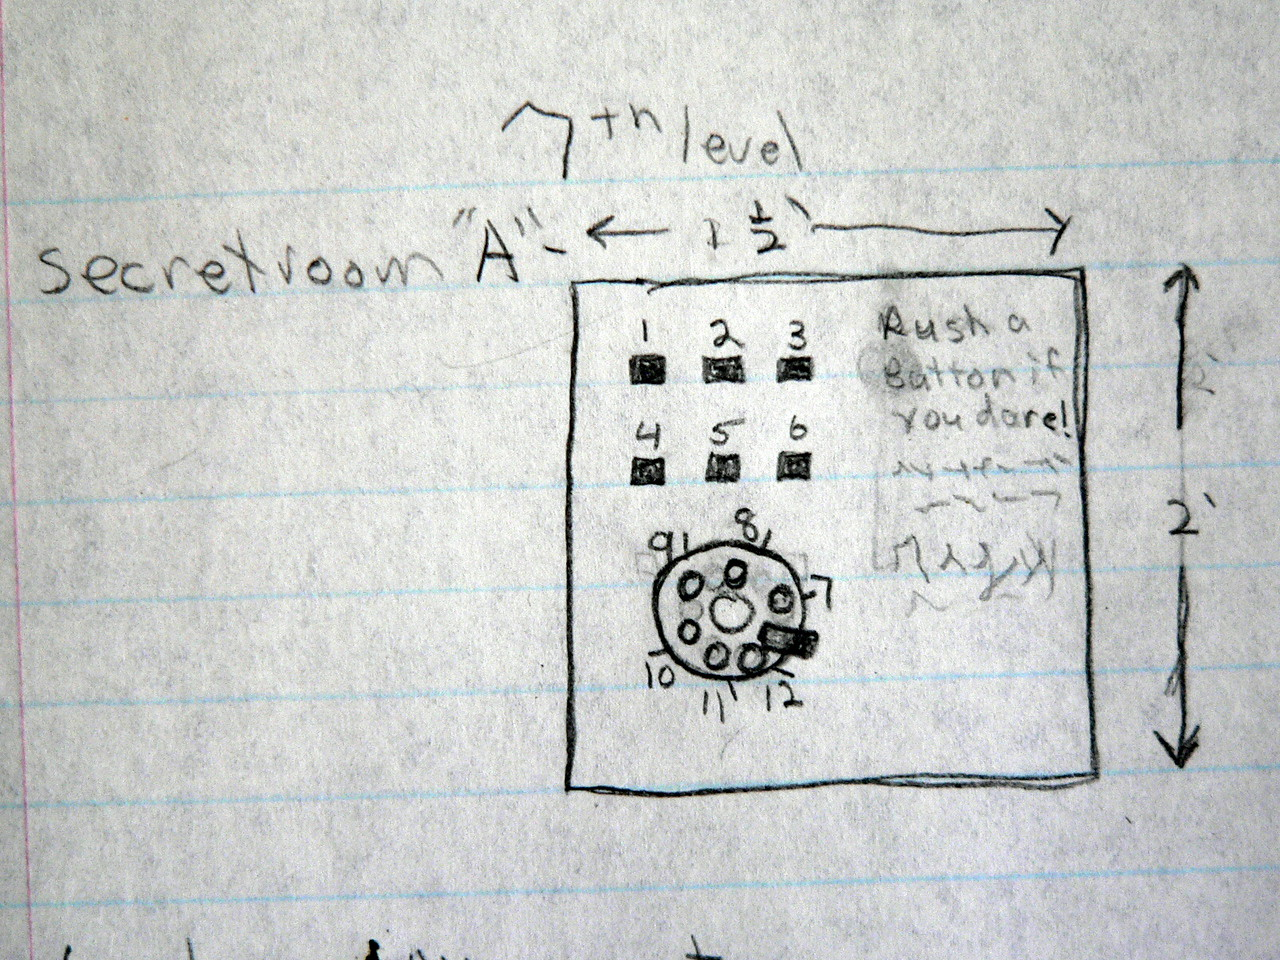 Drawing of the interface for some game of chance trap.  Push buttons and dial-up numbers to determine your fate!